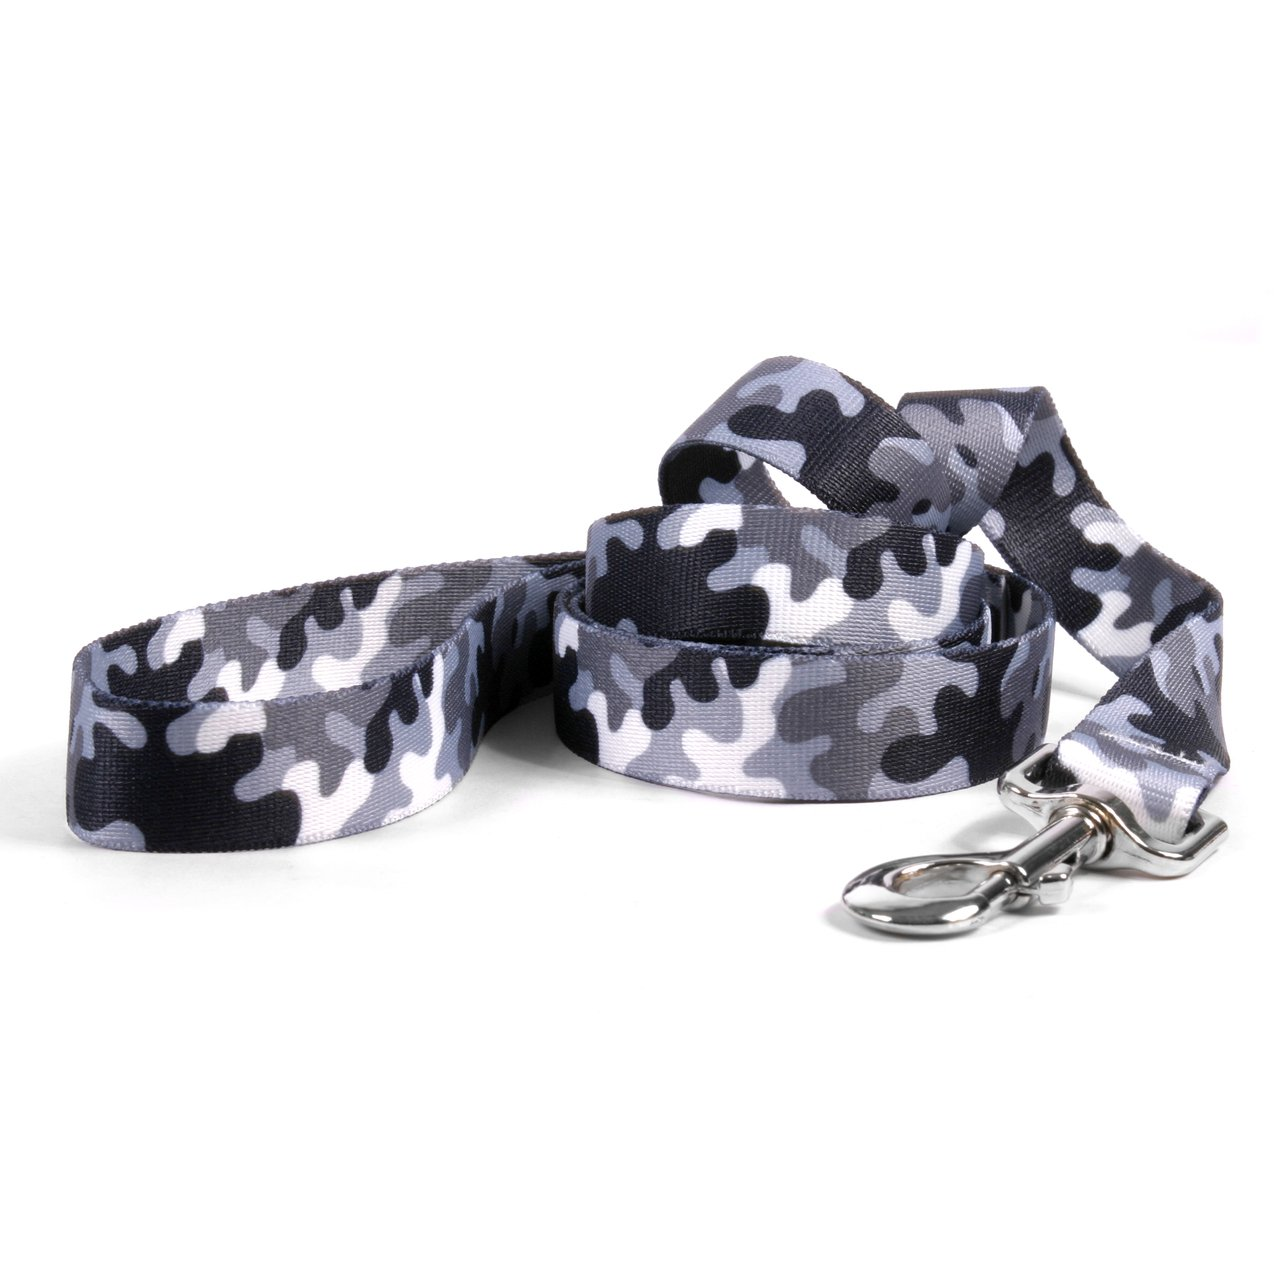 Yellow Dog Design Black And White Camo Dog Leash 1'' Wide And 5' (60'') Long, Large